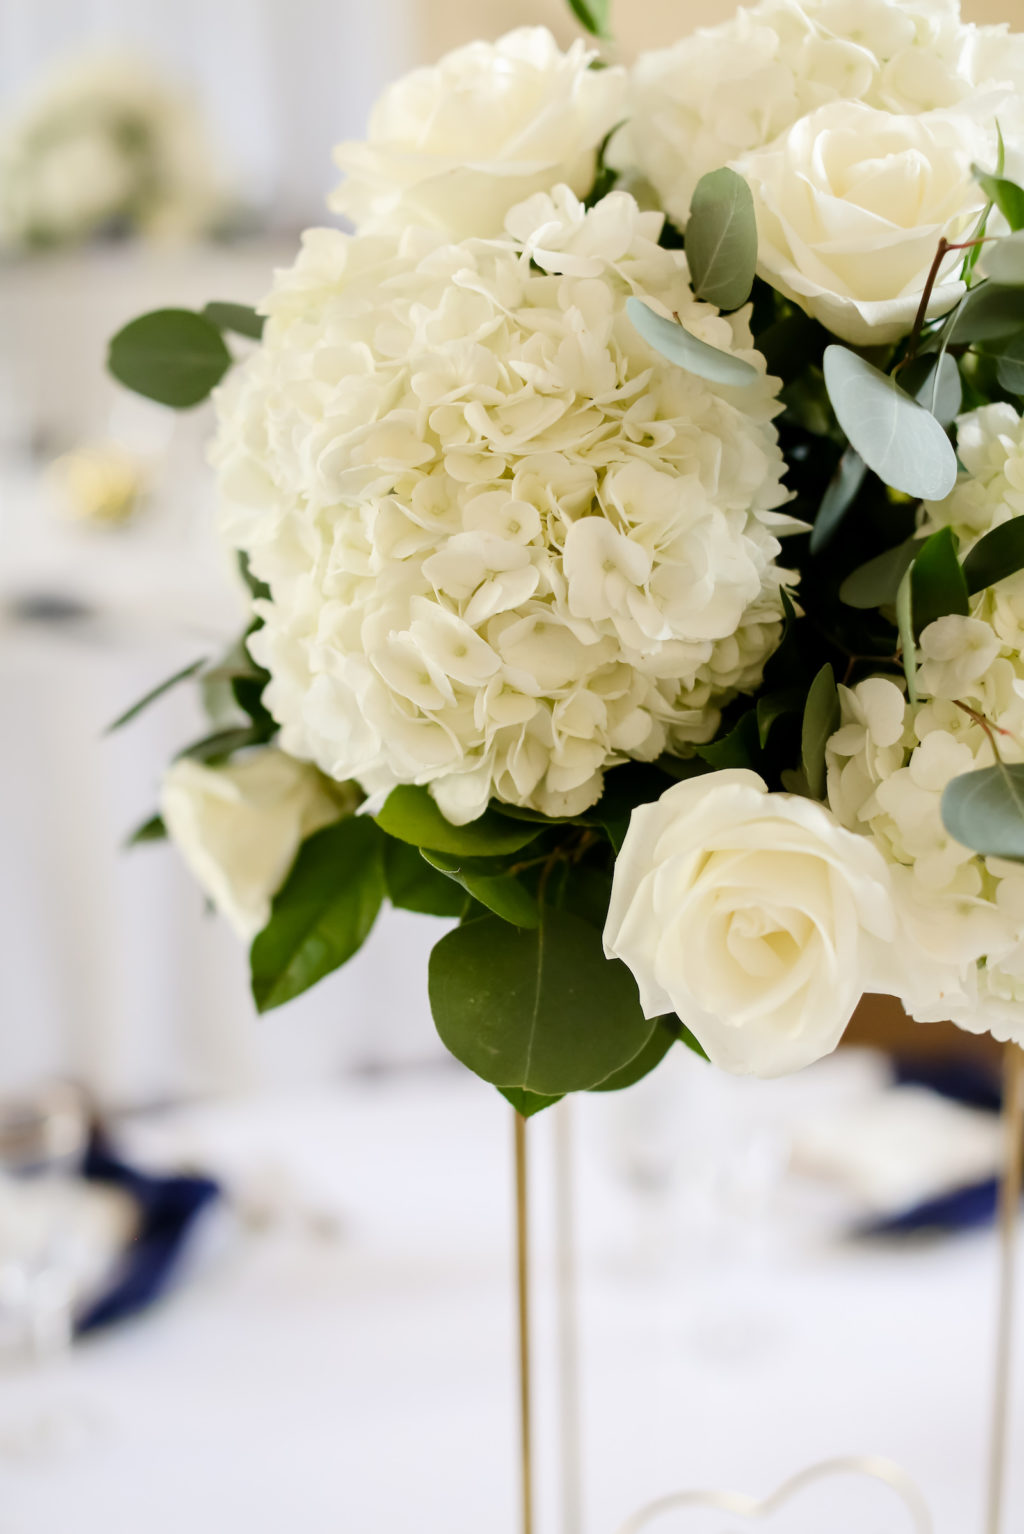 Classic Wedding Reception Decor, White Hydrangeas and Roses with Greenery Floral Centerpiece | Tampa Bay Wedding Photographer Lifelong Photography Studio | Wedding Planner Core Concepts